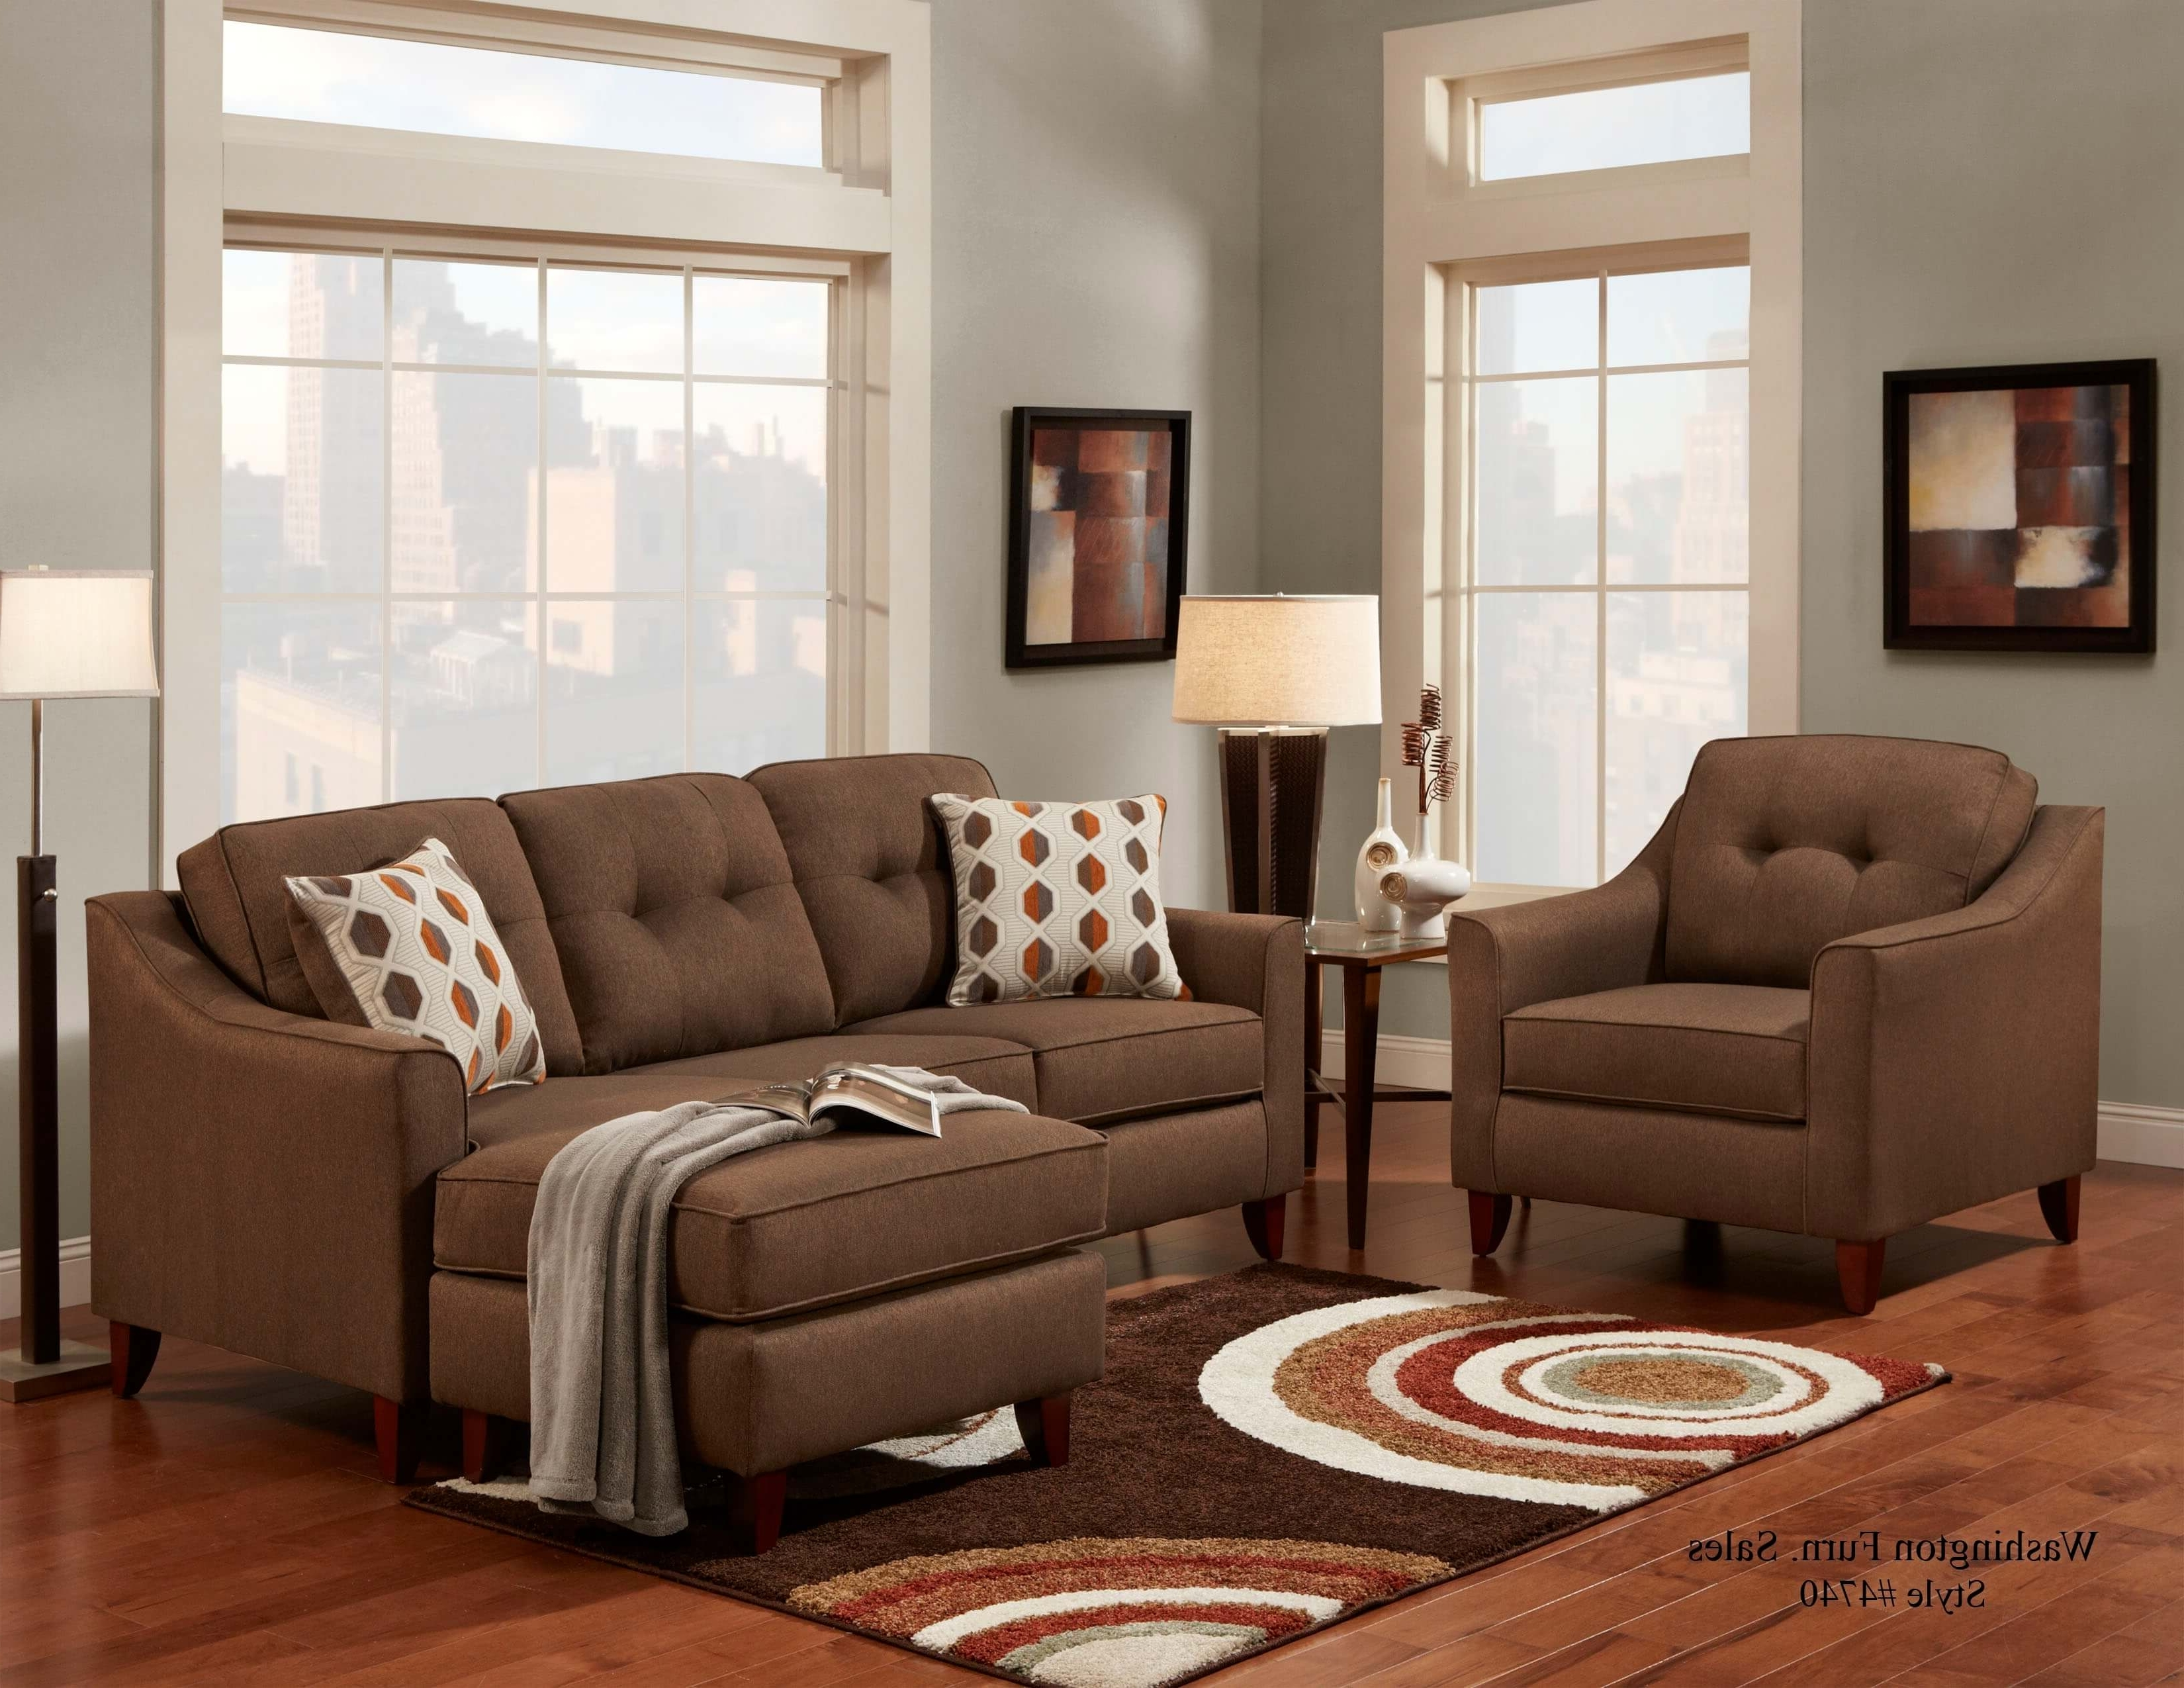 Sectional Sofa Sets Within Trendy Chocolate Sectional Sofas (View 12 of 15)